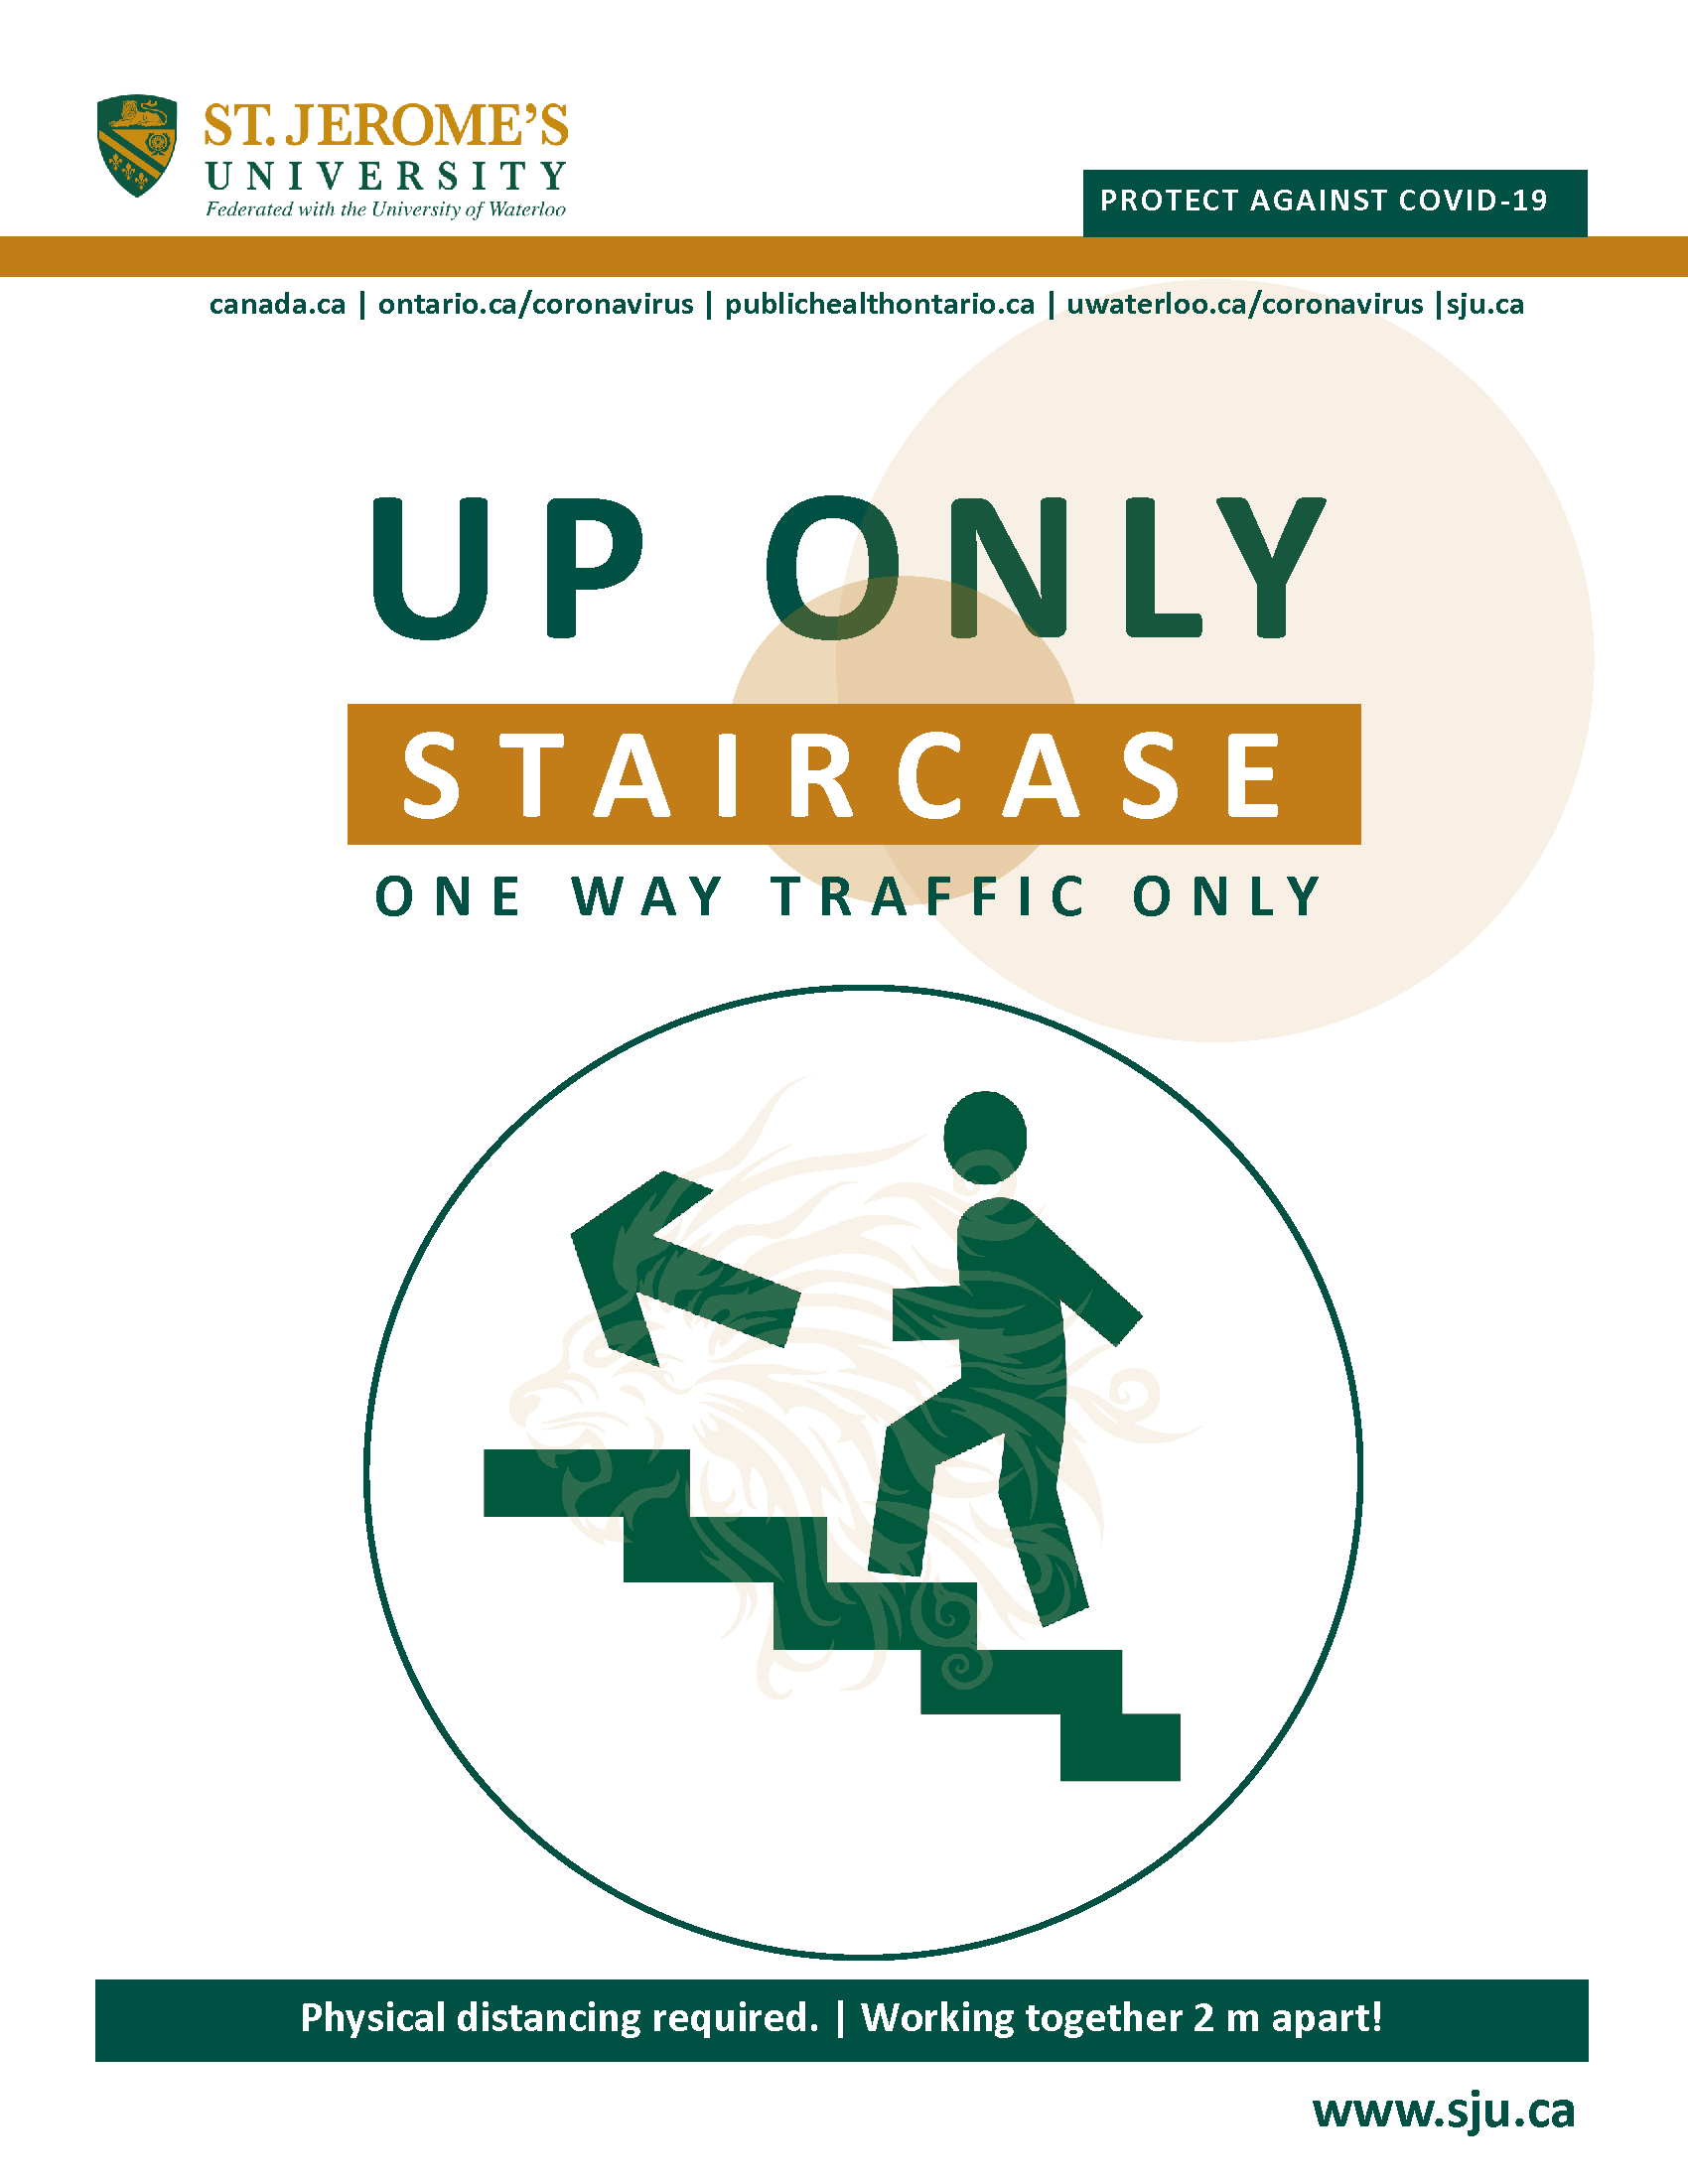 A stylized imag of a person walking up a flight of stairs and above reads Up Only Staircase - One Way Traffic Only